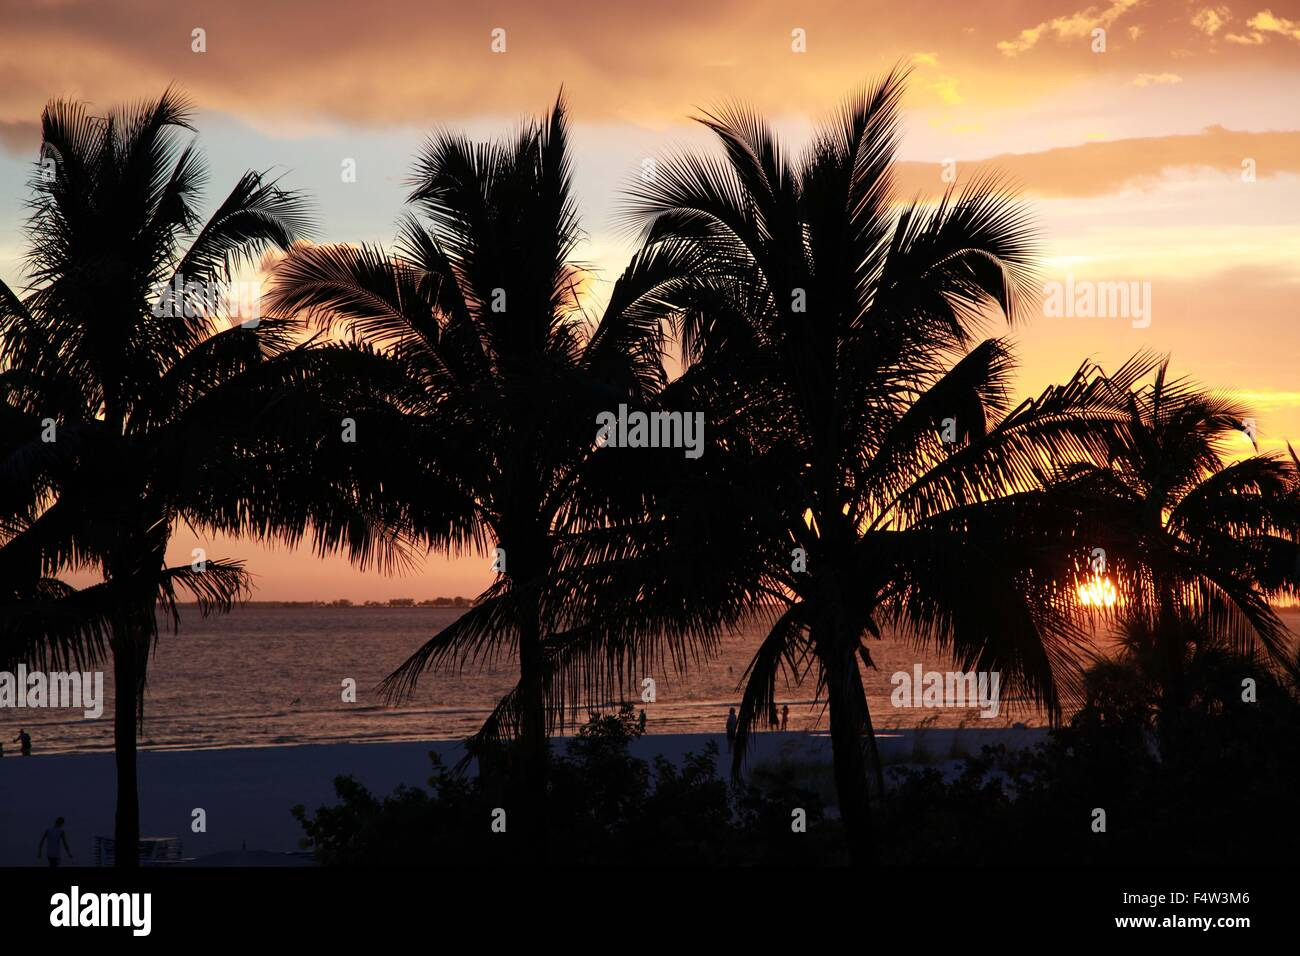 Sanibel, Florida, USA. 9th Aug, 2013. Palm trees in silhouette at sunset. Situated along the Gulf of Mexico, just Stock Photo